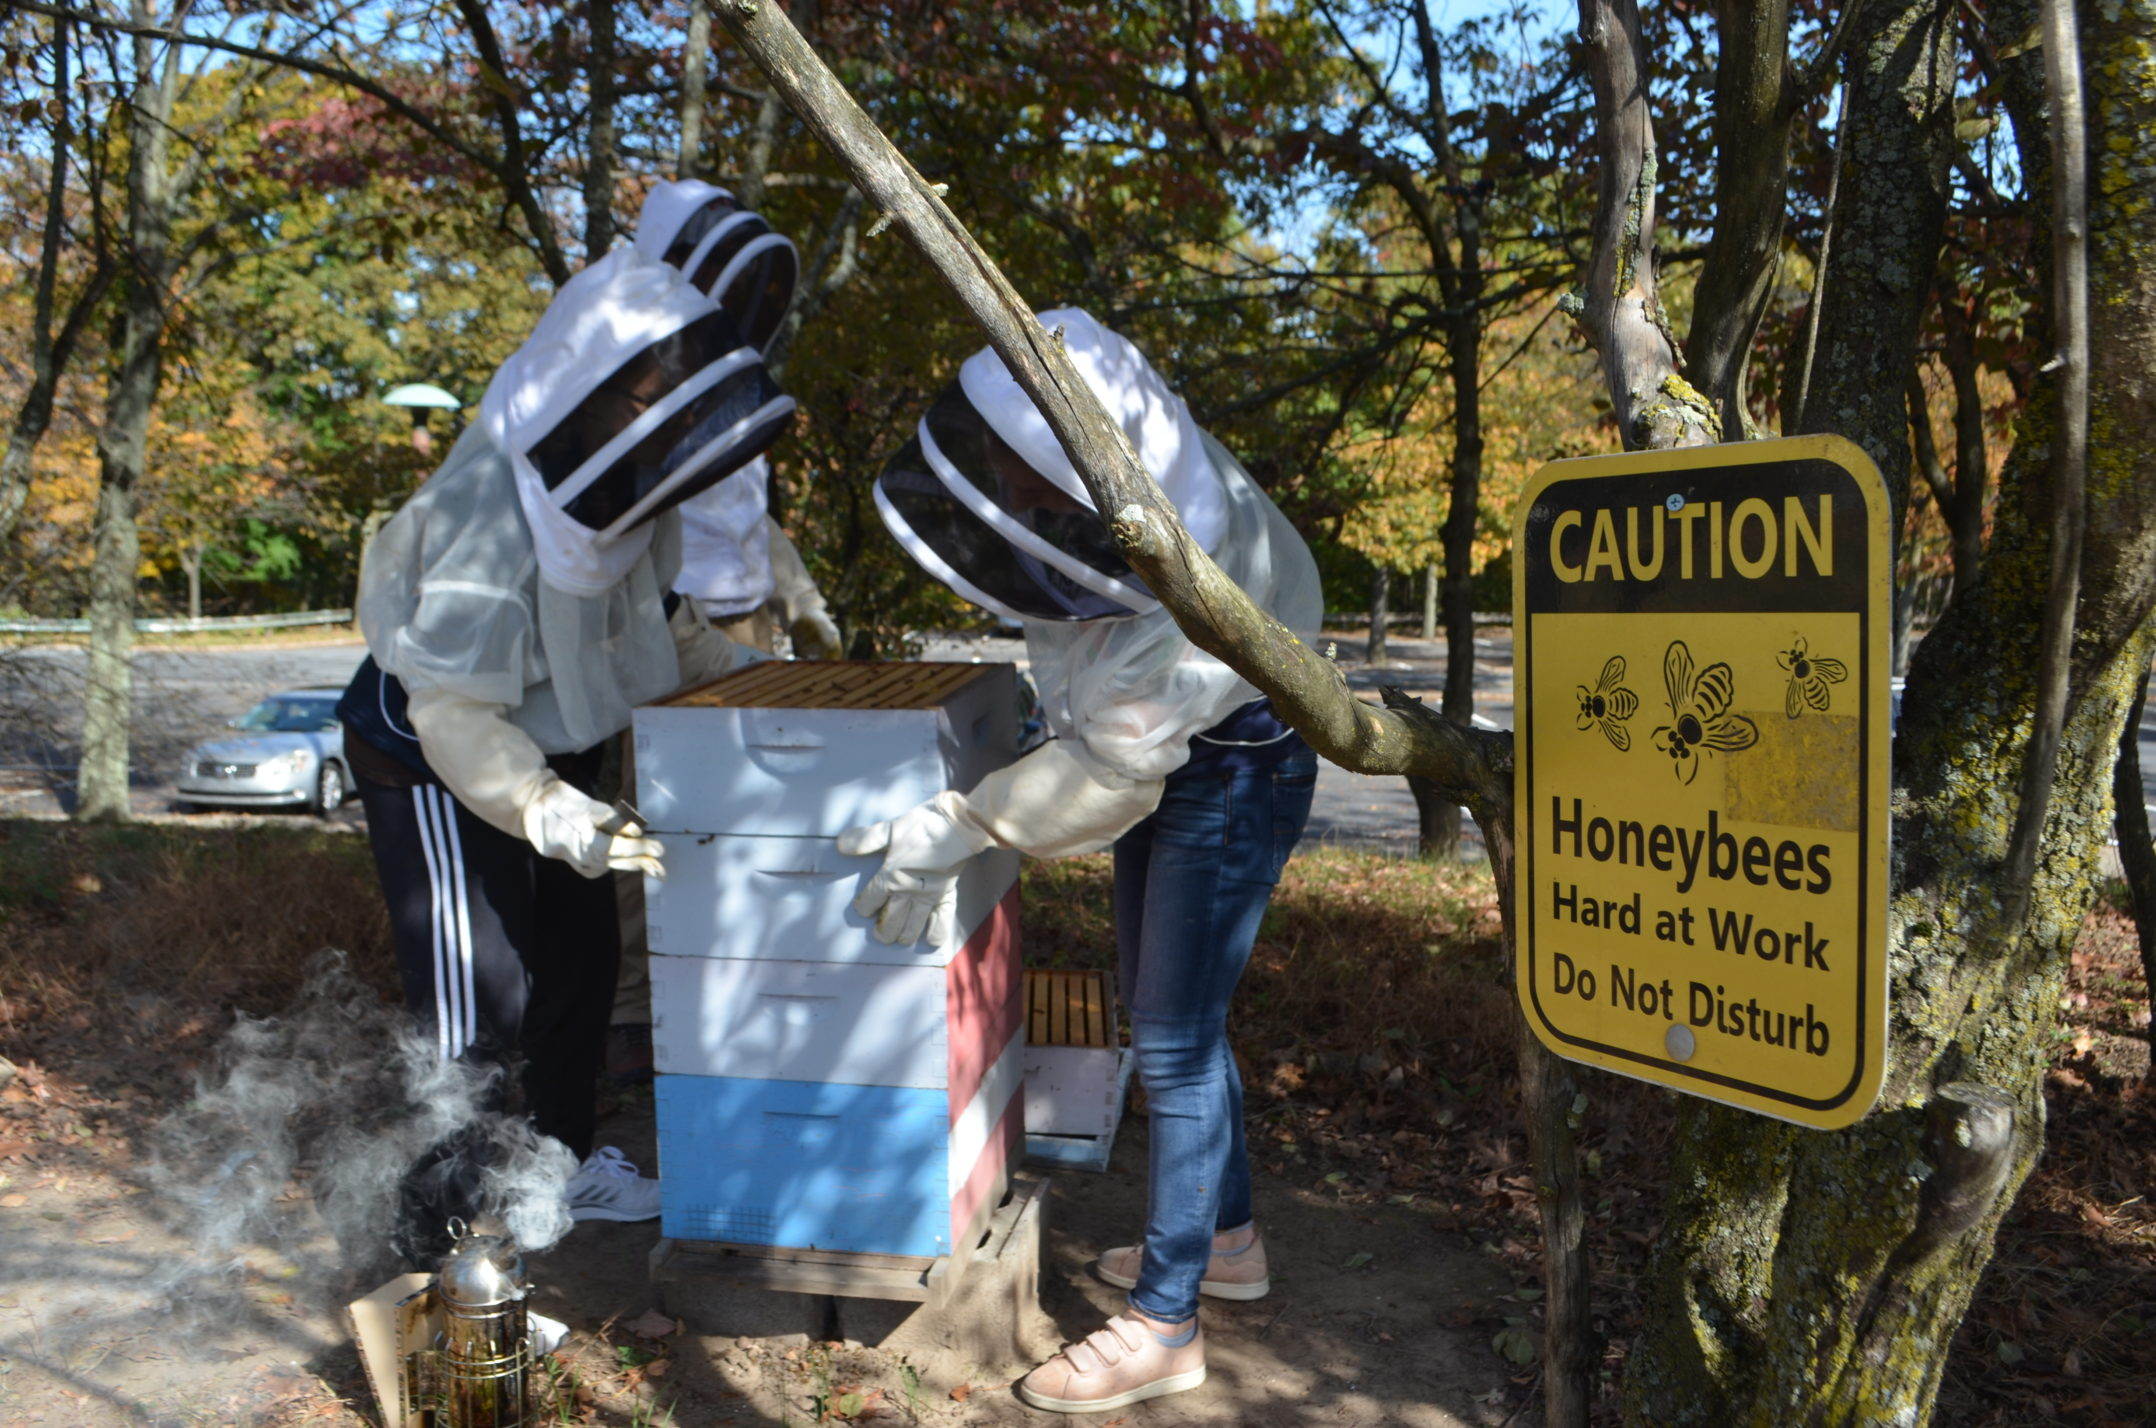 """Members of the beekeeping club tend to Lehigh's hives Oct. 22 on Mountaintop Campus. A sign on the trees near the hives reads """"Caution: Honeybees Hard at Work Do Not Disturb."""" (Delaney McCaffrey/B&W Staff)"""